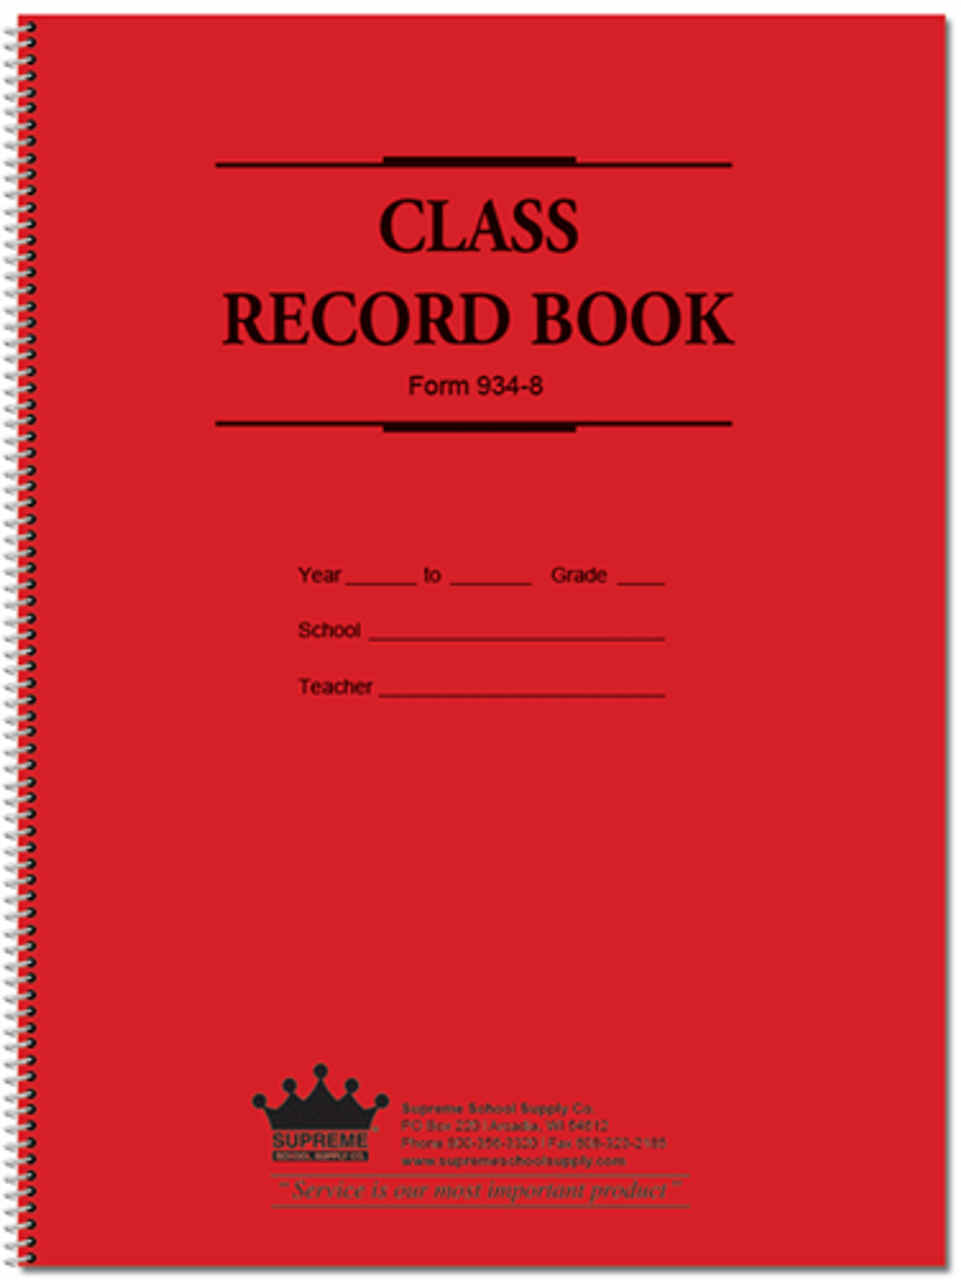 9 Week, Two Entry Class Record Book (934-8)